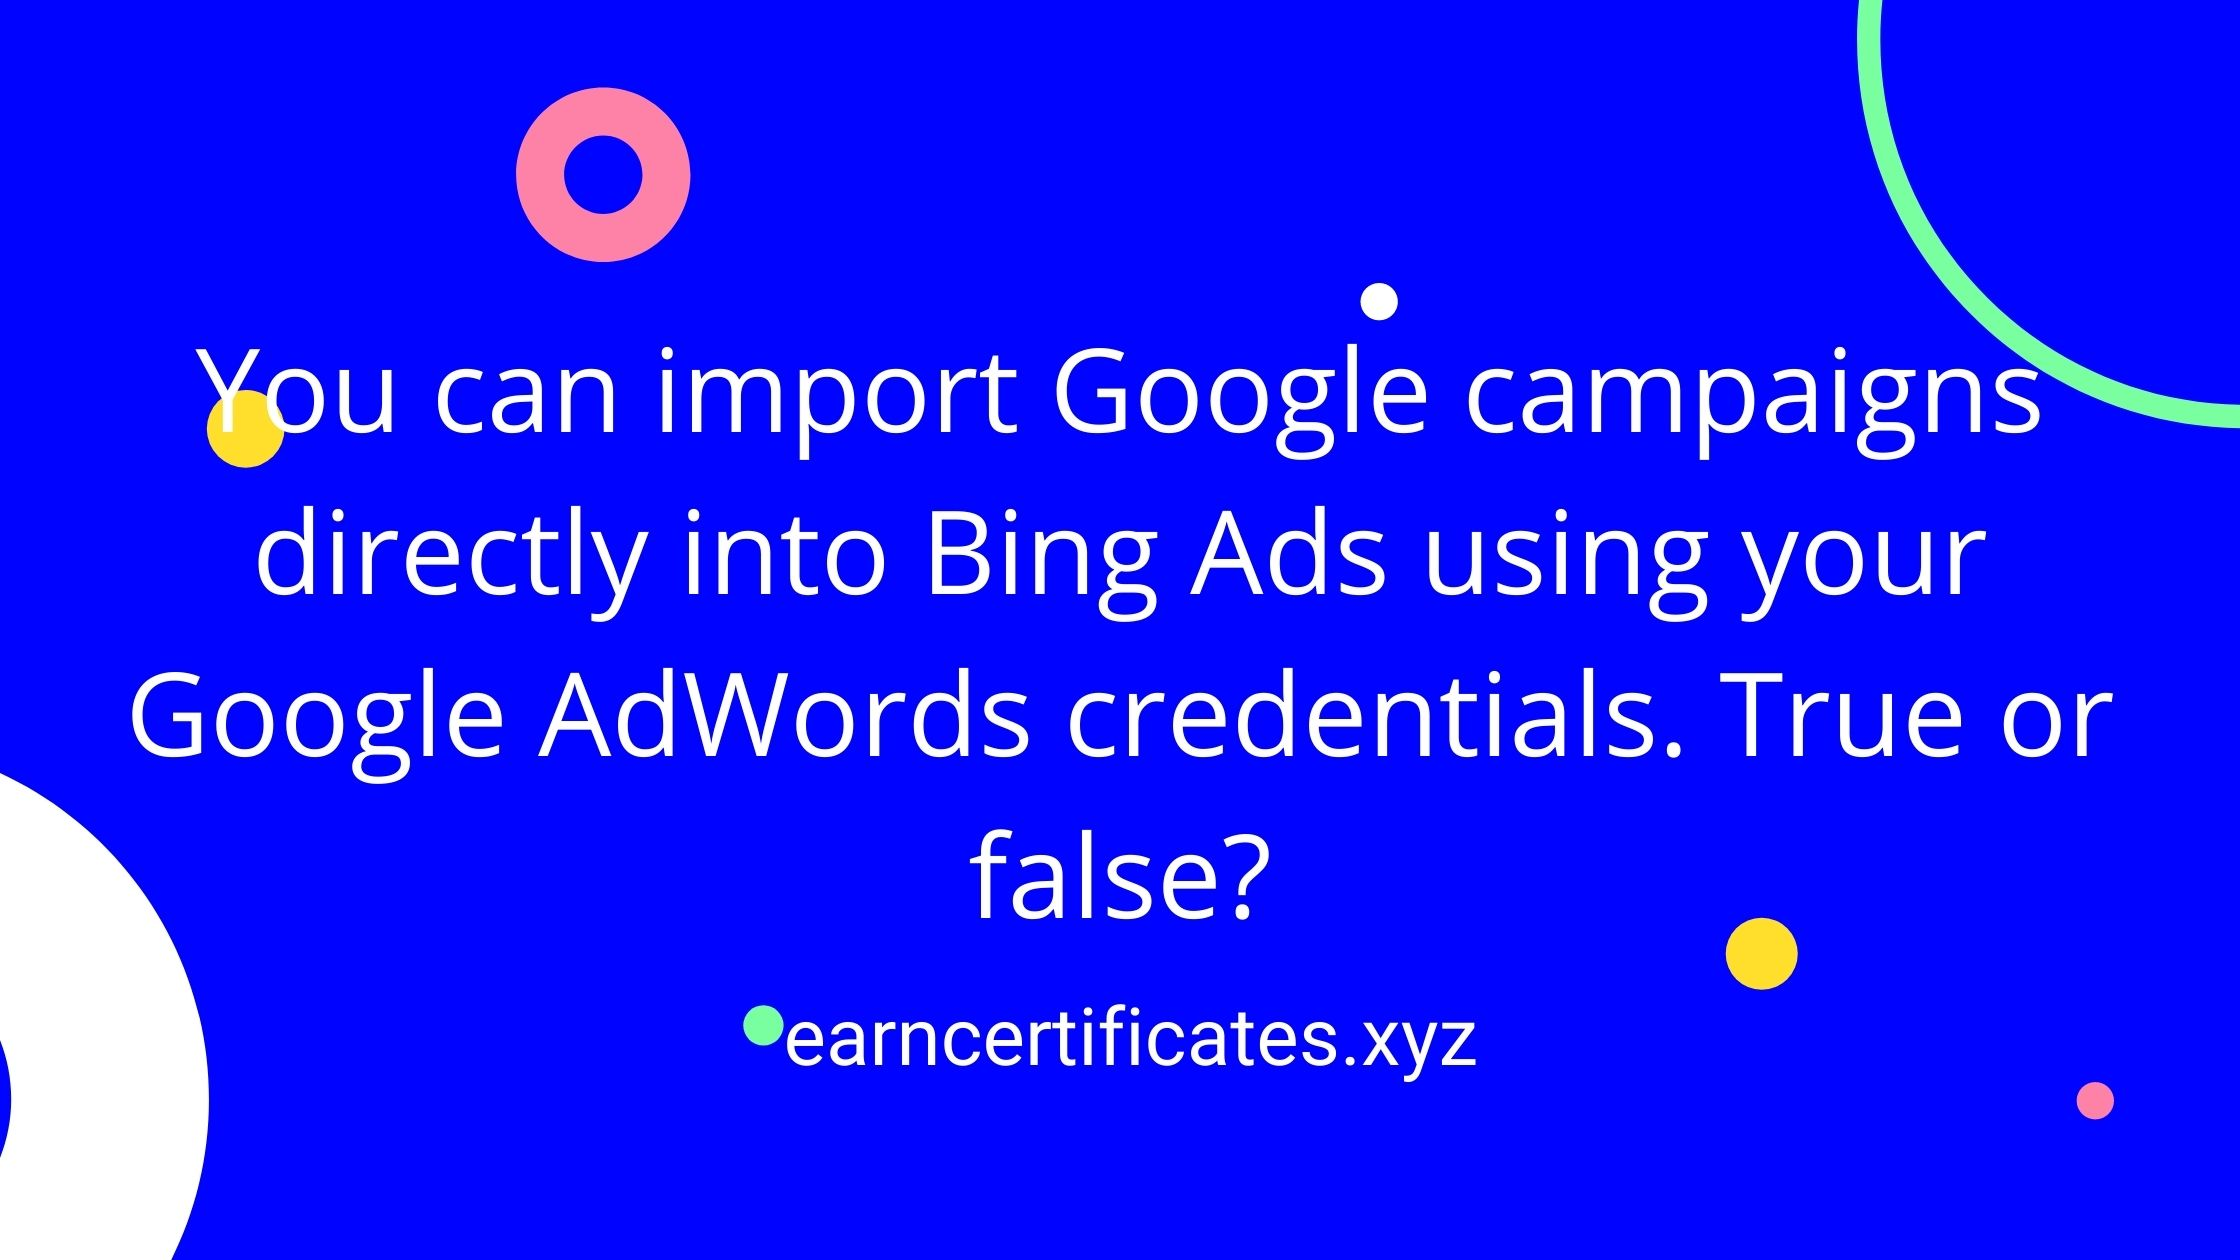 You can import Google campaigns directly into Bing Ads using your Google AdWords credentials. True or false?